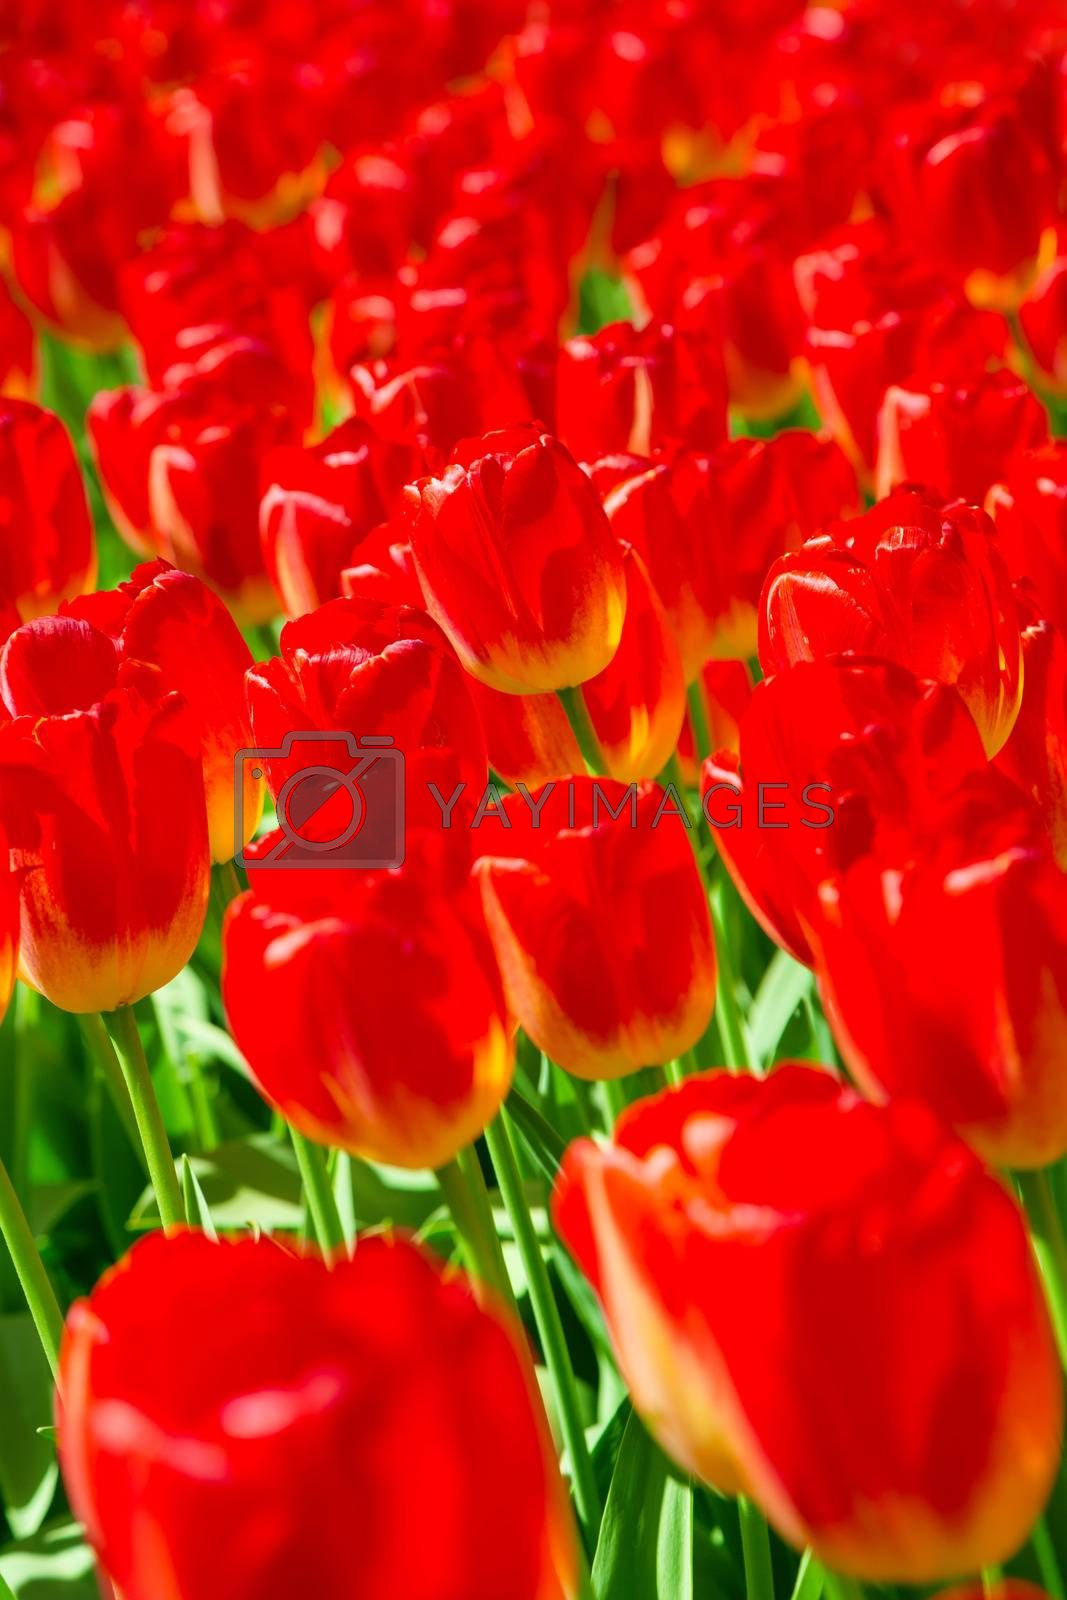 Tulip. Fresh red tulips field. Taken in closeup with a view from above. Flower field of colourful tulips in spring. Tulip background. Keukenhof garden, Netherlands. Group of blooming red tulips.